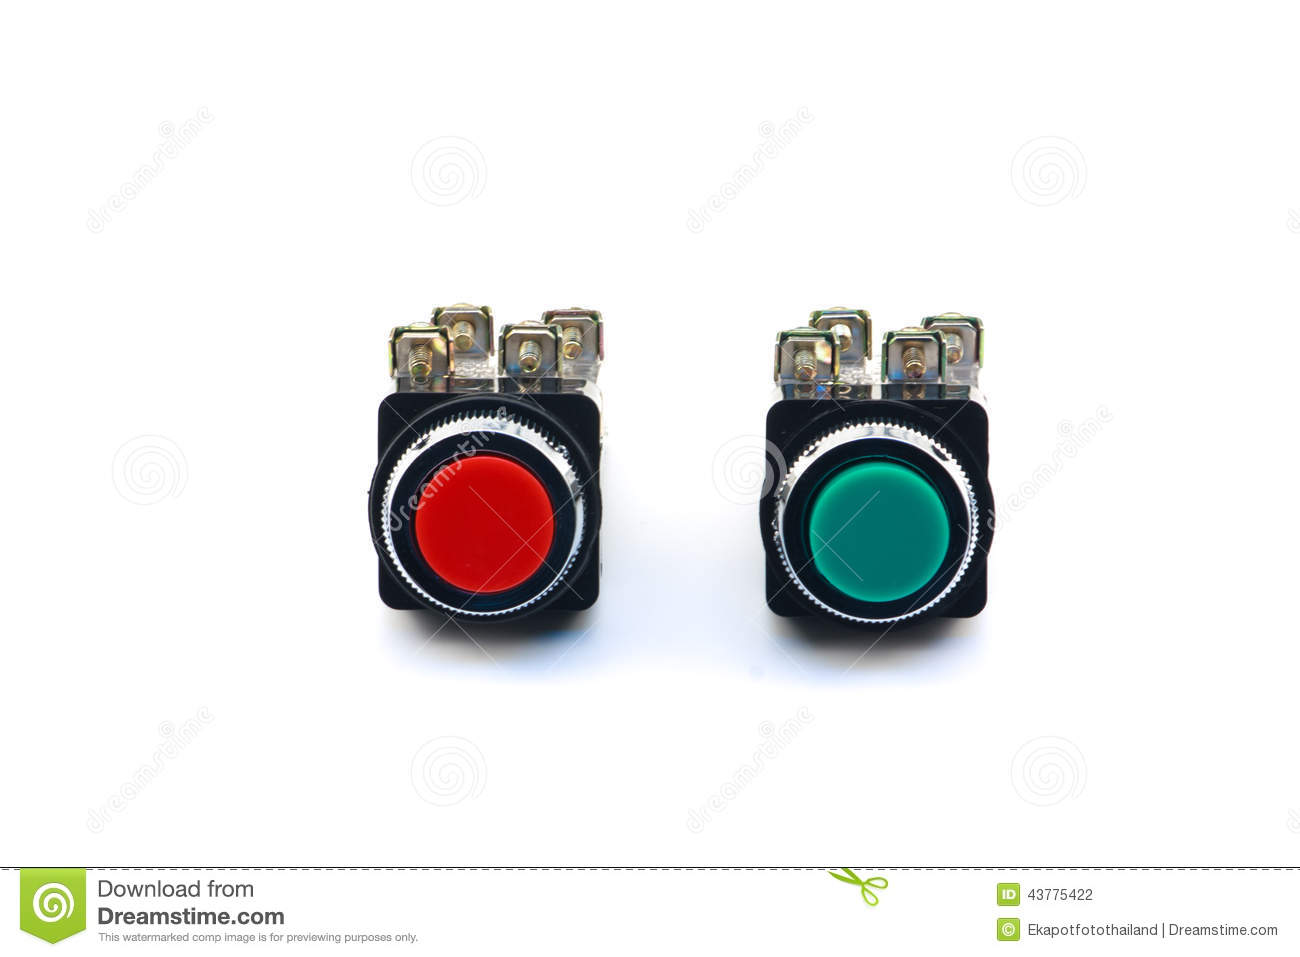 Commutateur de bouton poussoir photo stock image 43775422 for Combouton poussoir urinoir